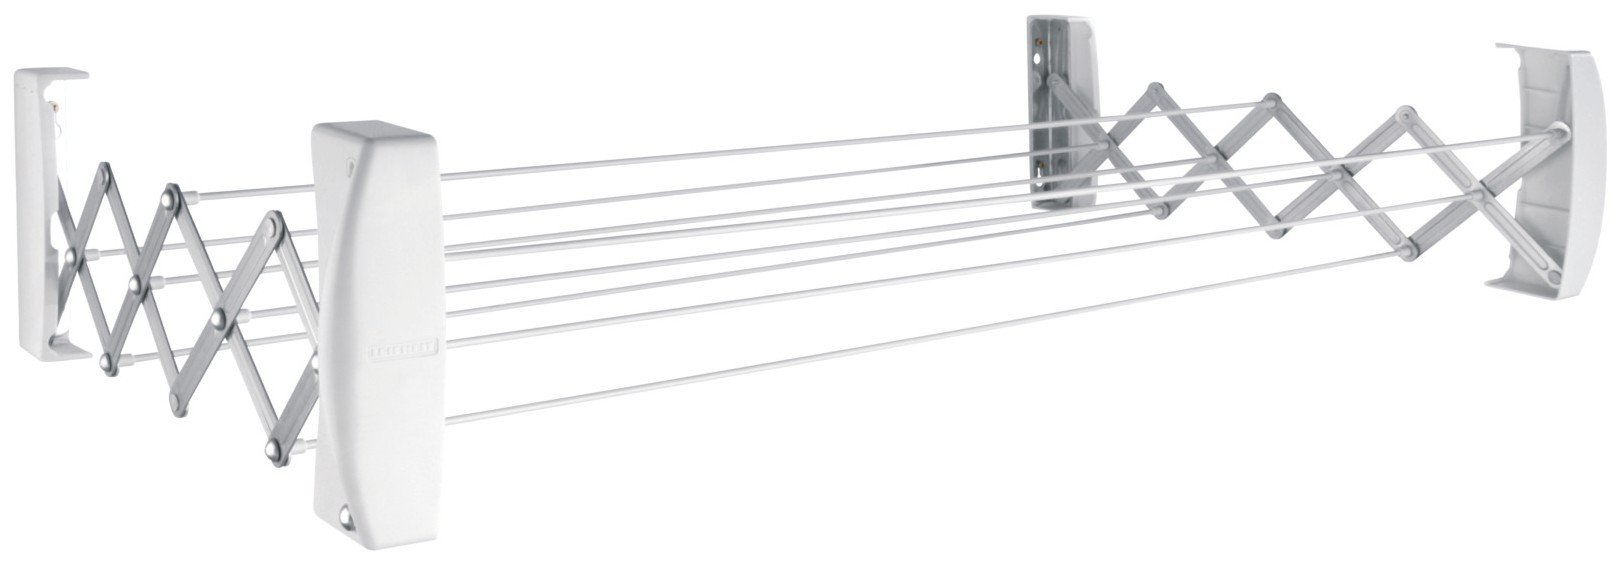 Leifheit Teleclip 74 Extendable - Tendedero de pared de metal, 12x110.8x11 cm,